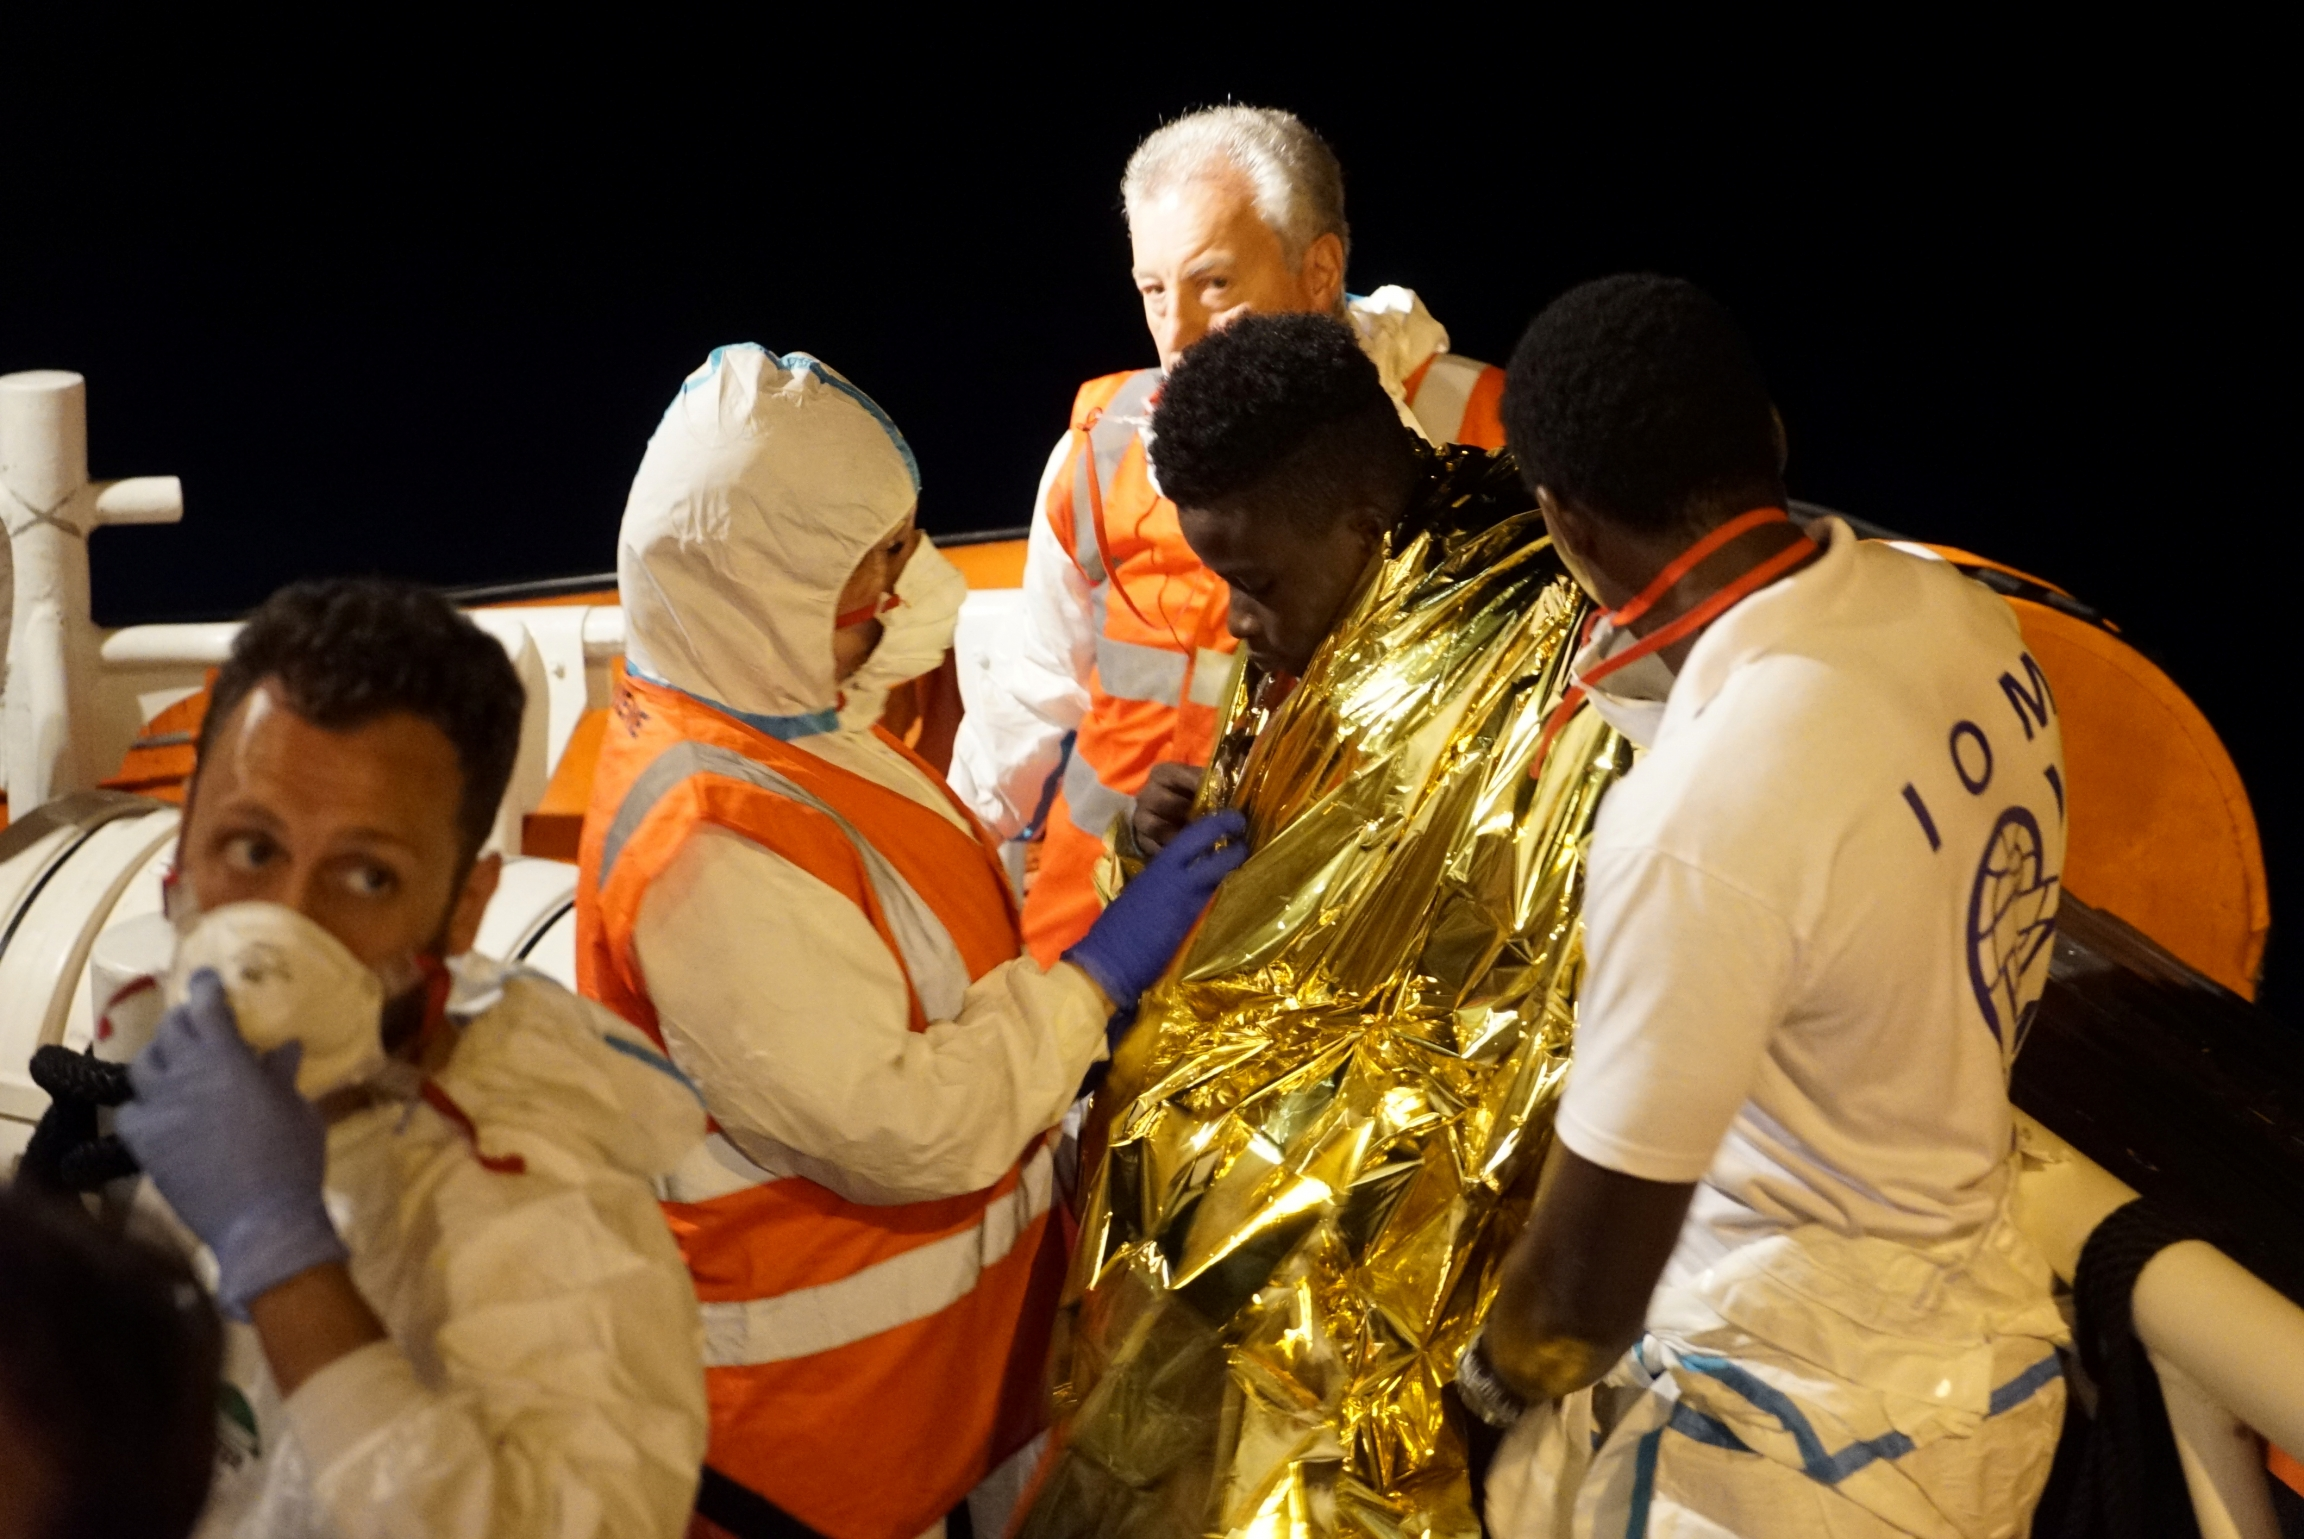 a migrant is rescued at sea